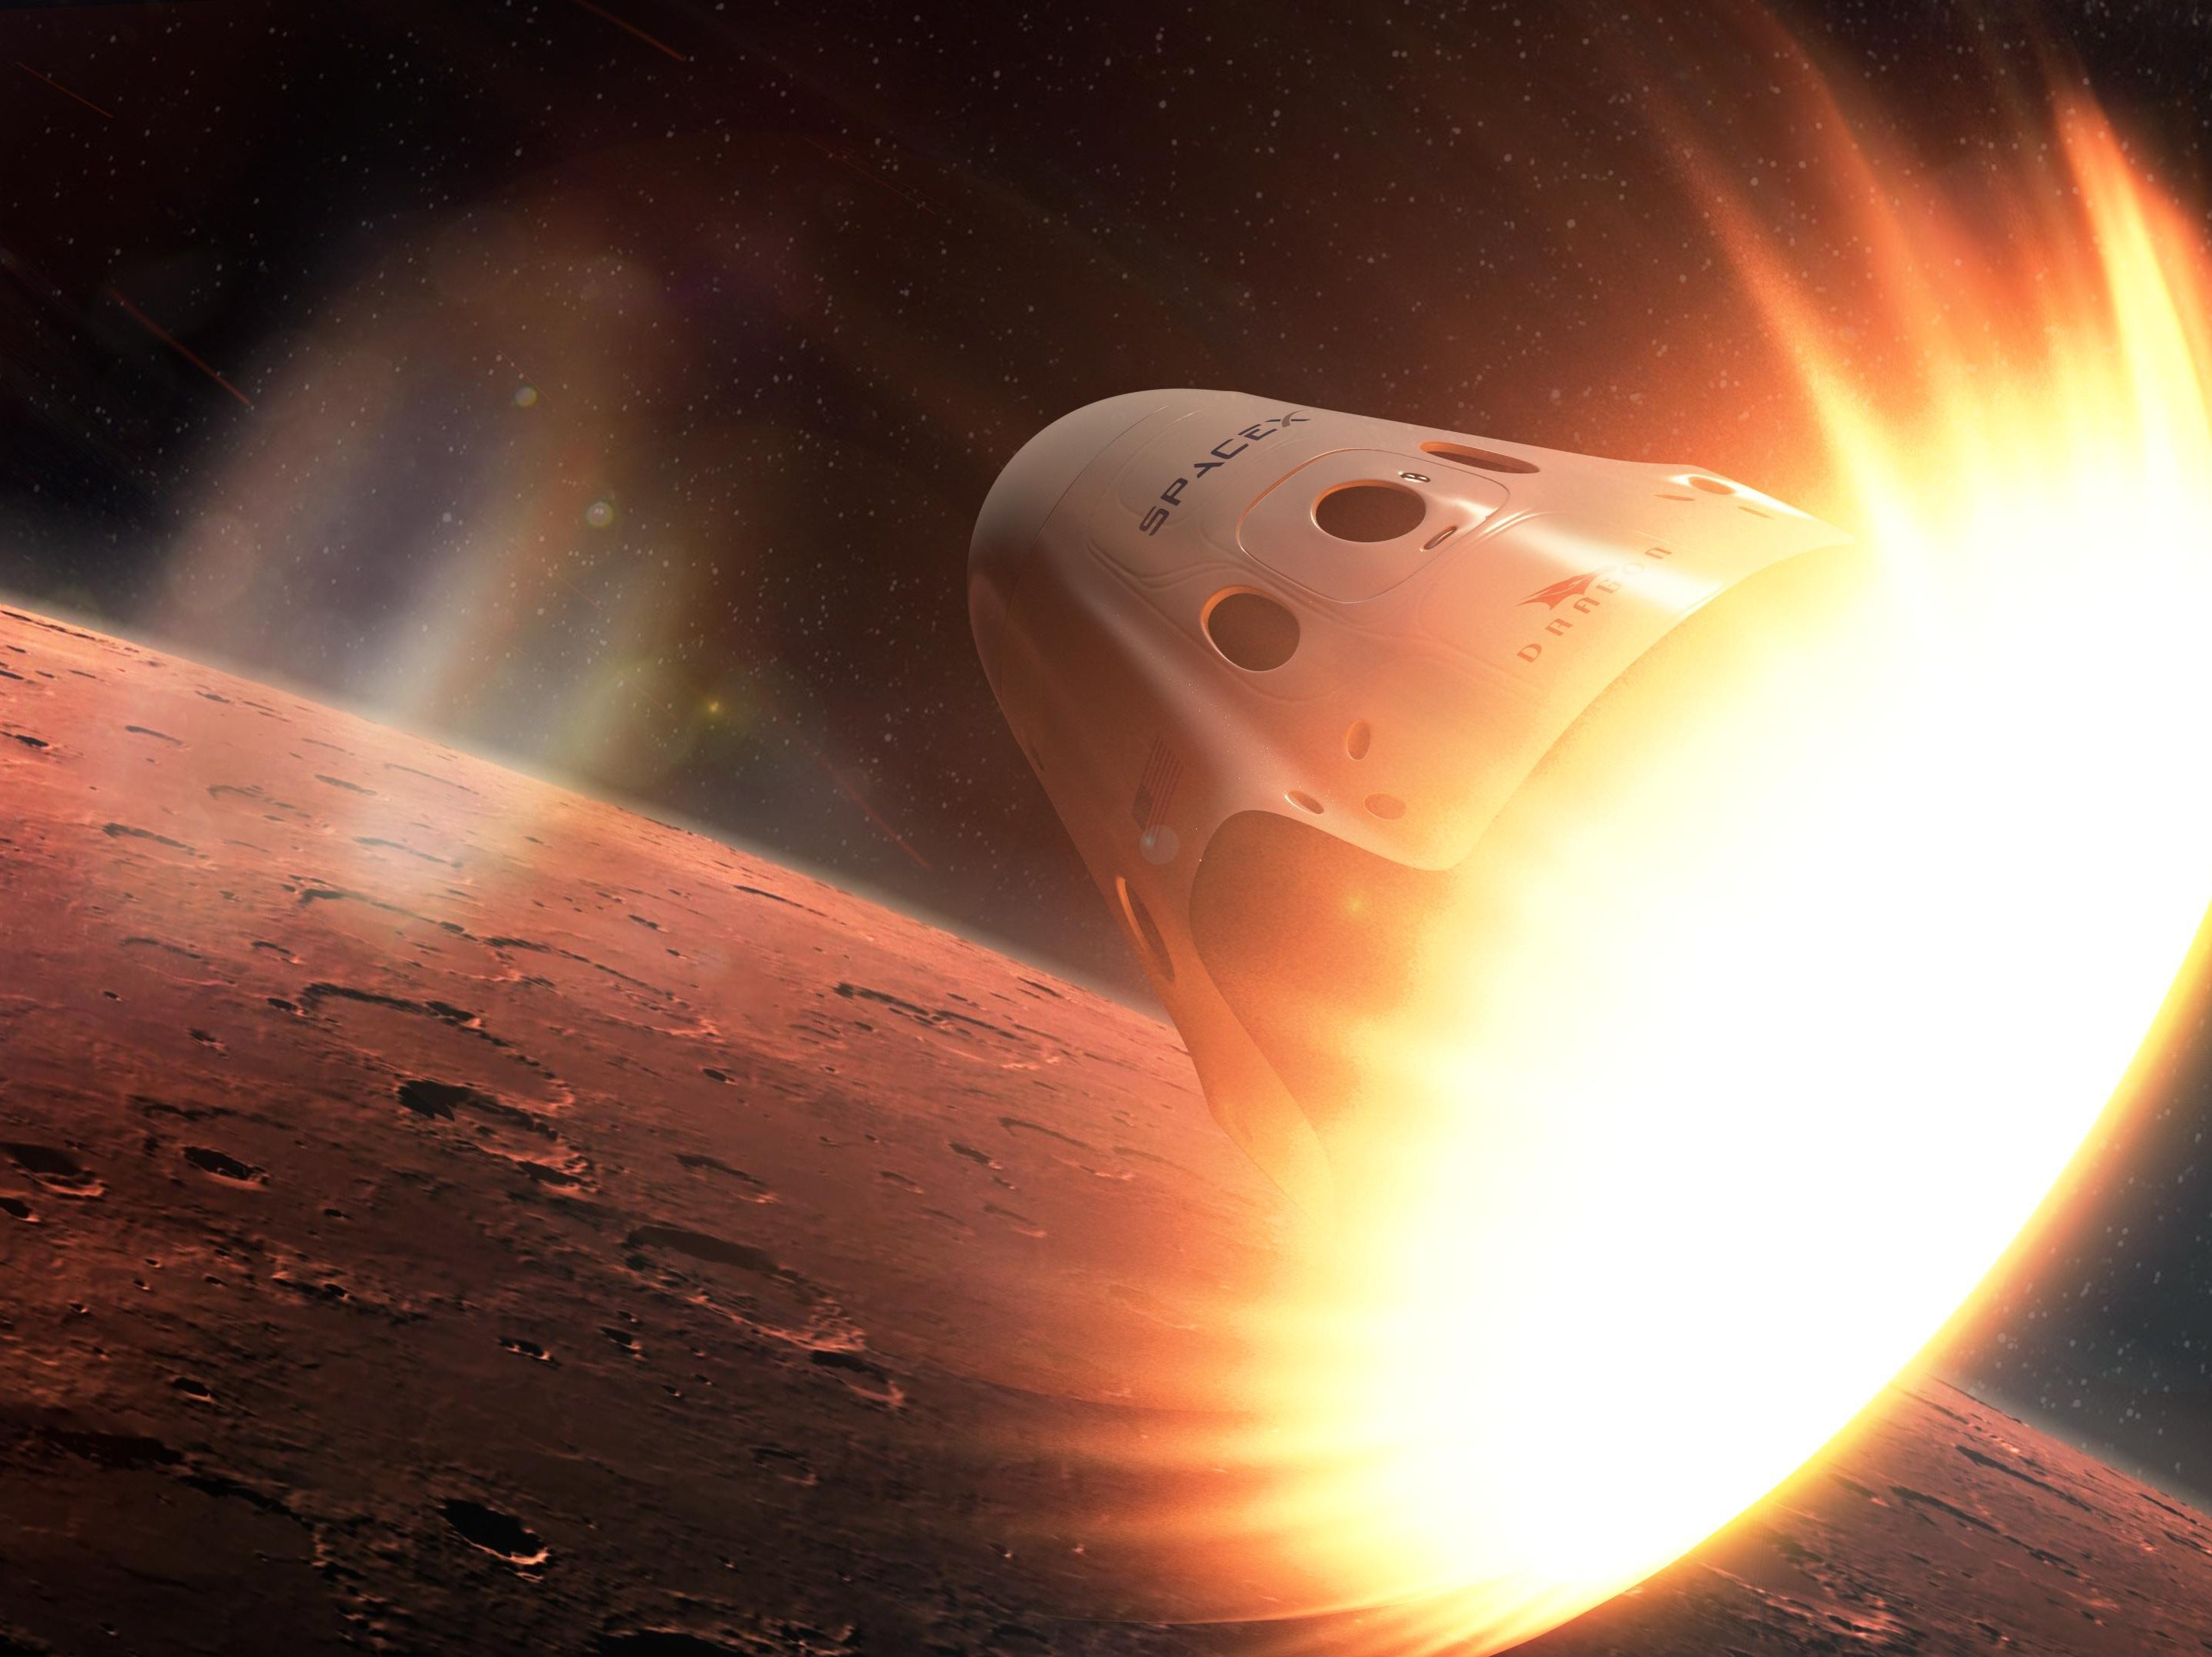 NASA: No, We're Not Racing SpaceX to Mars